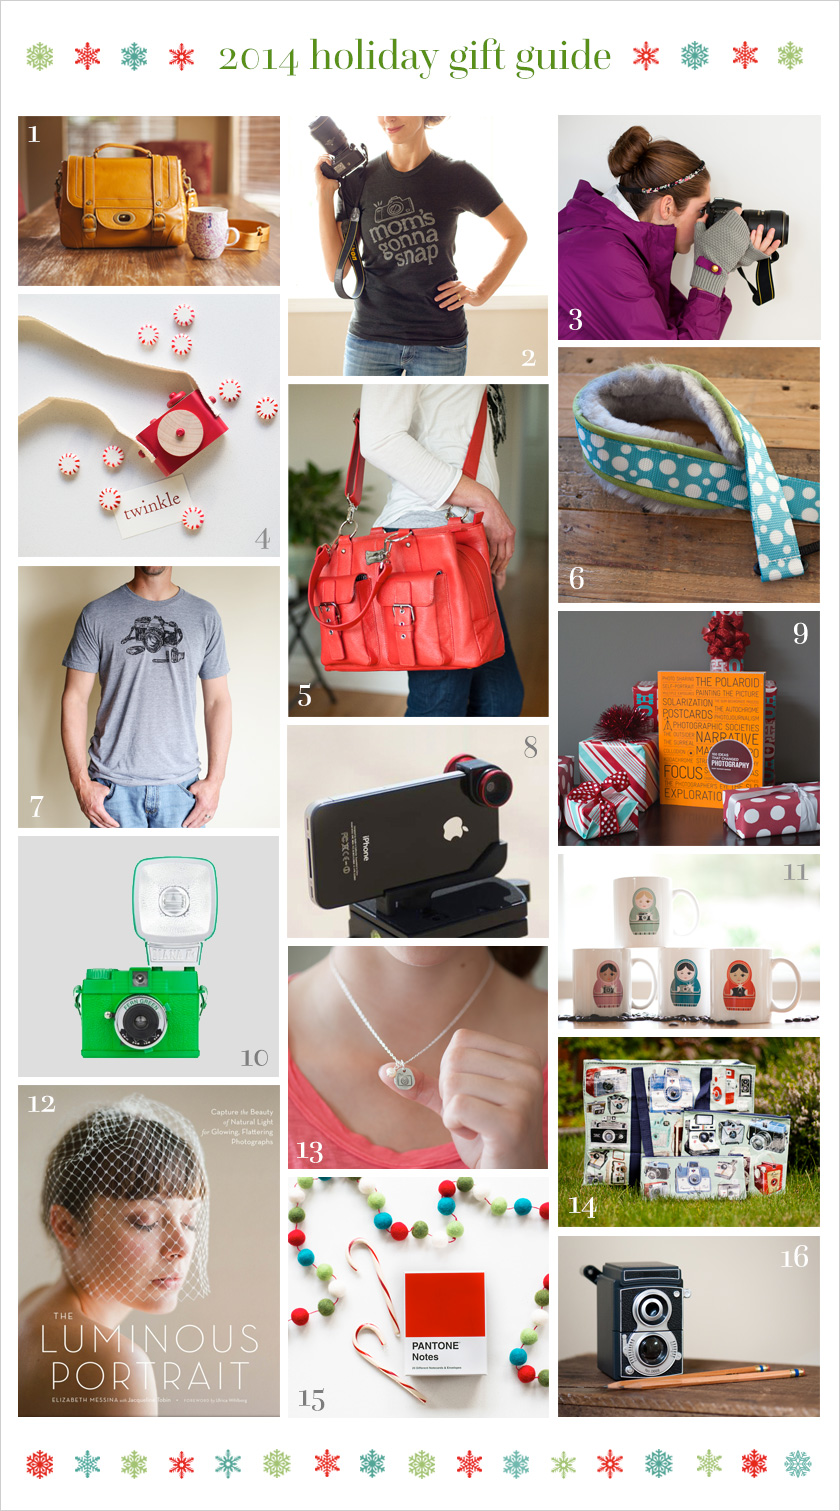 2014 Holiday Gift Guide for photographers from Clickin Moms